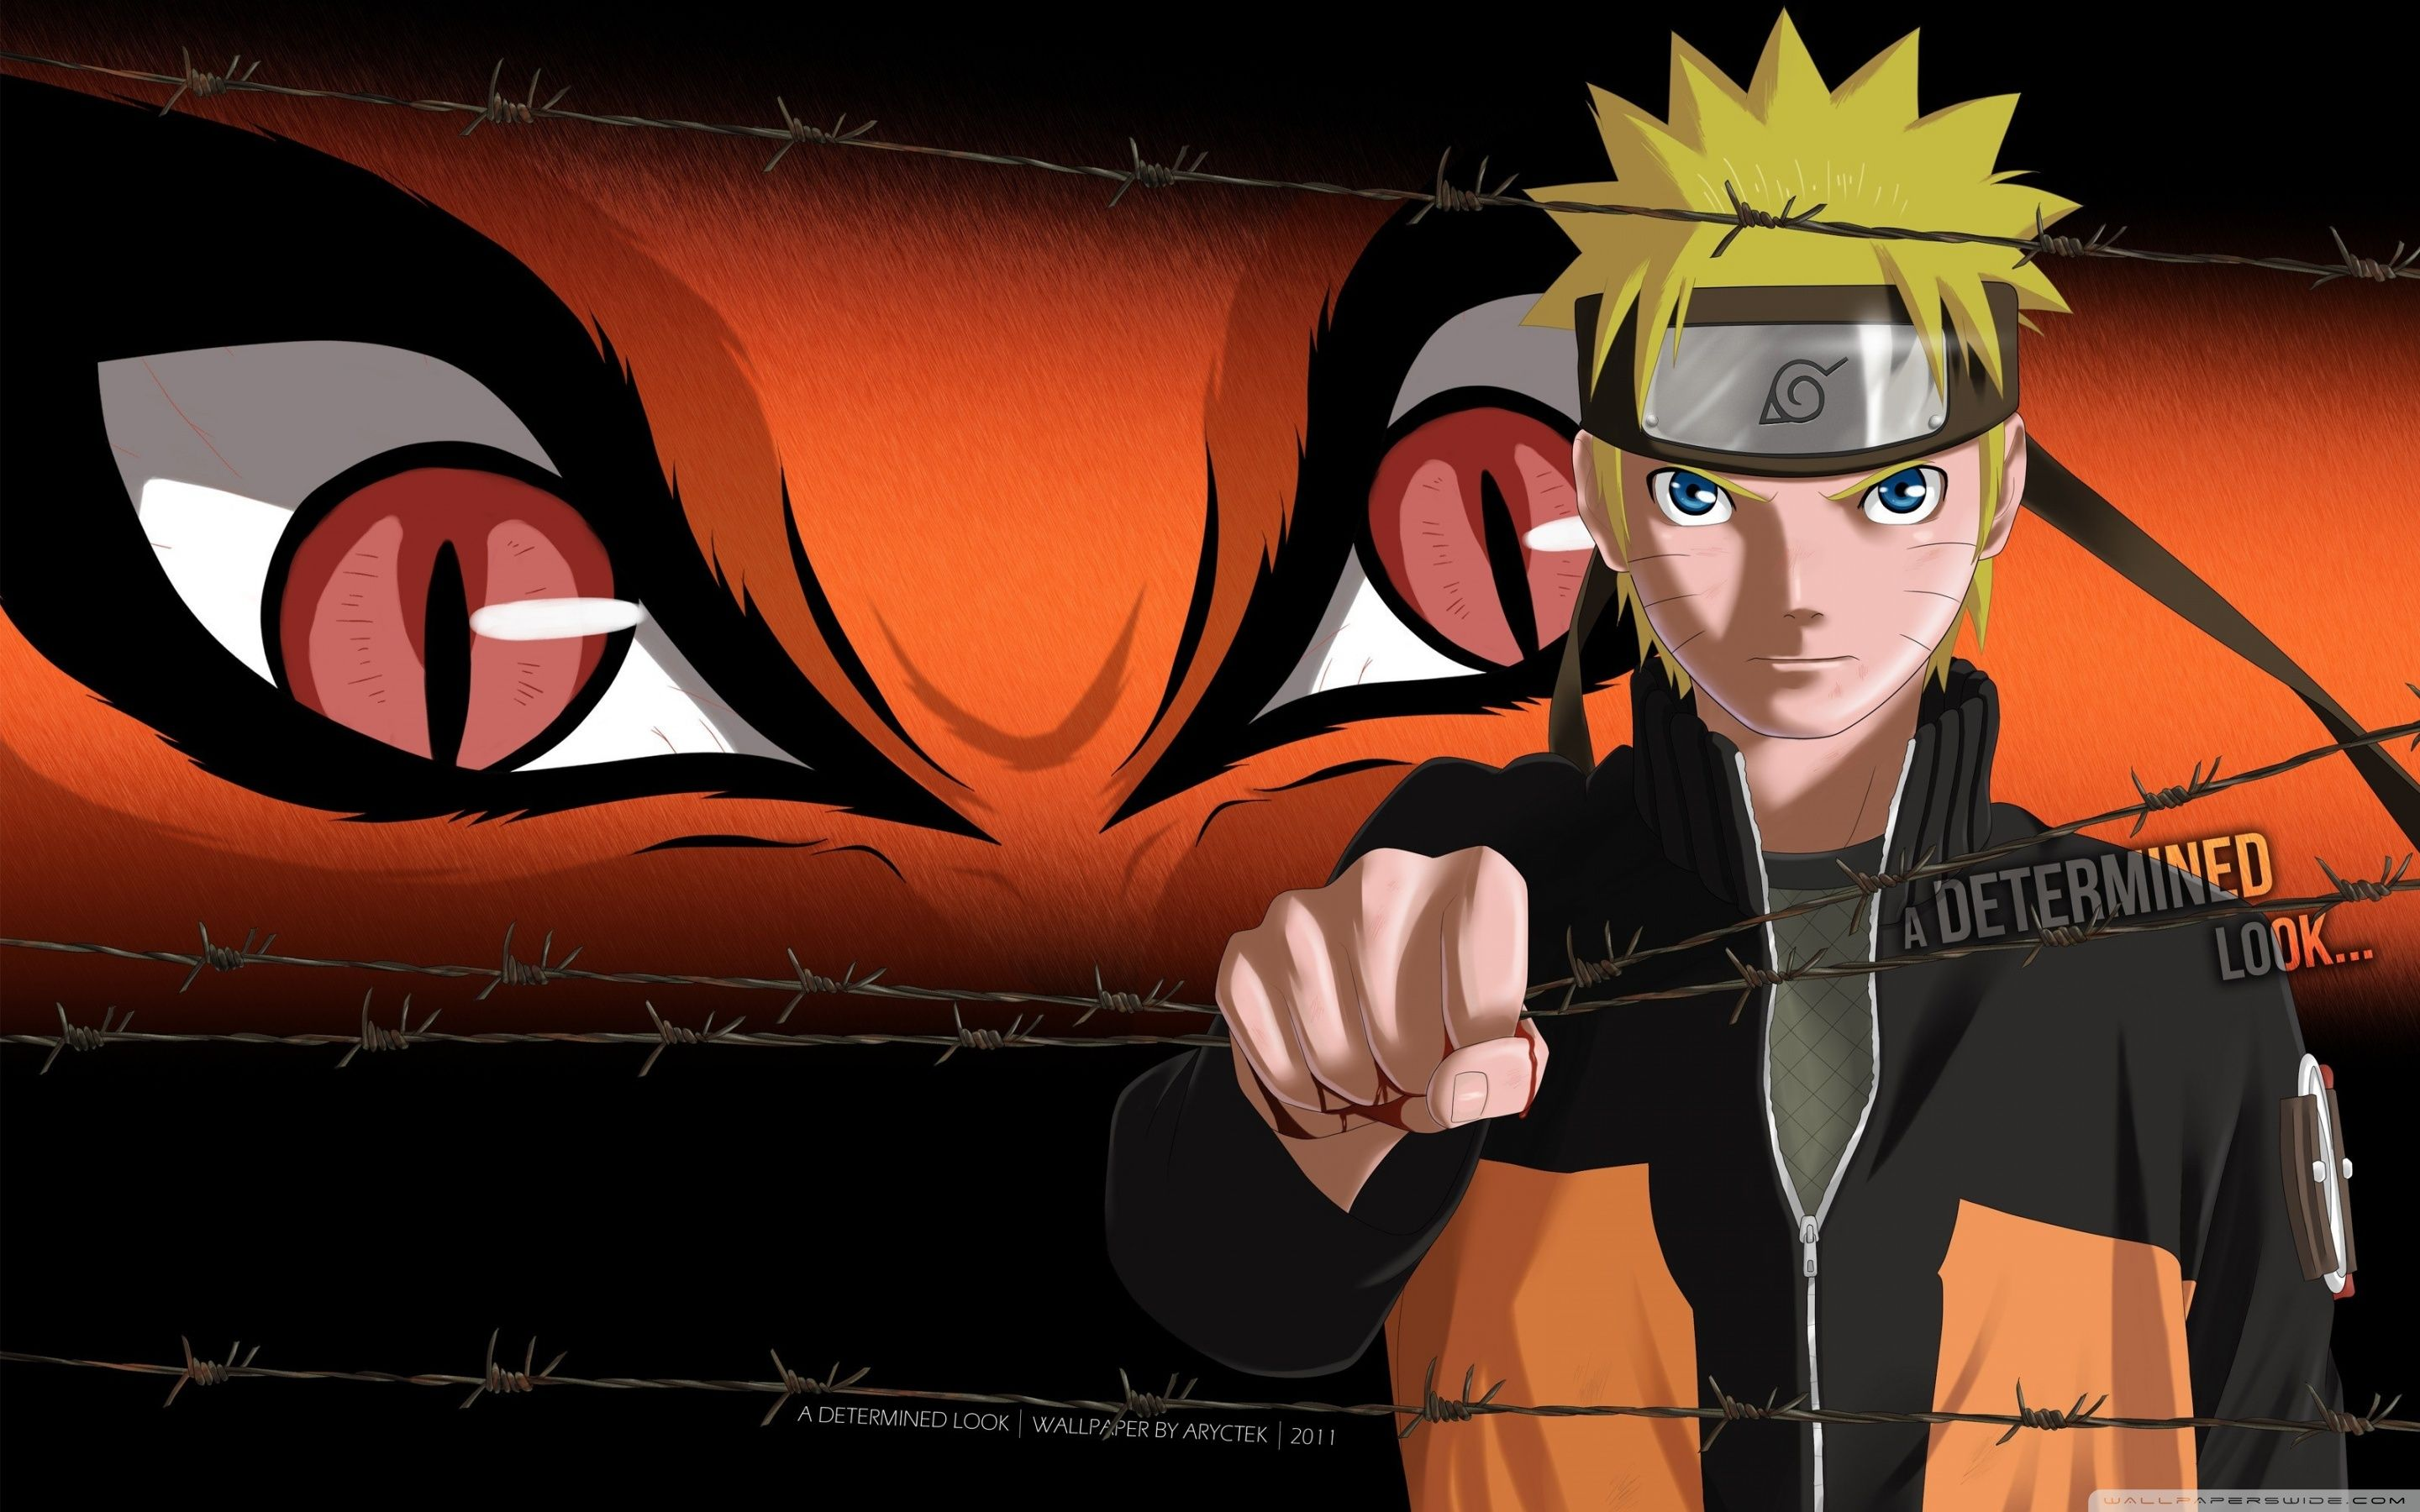 Wallpaper Naruto Uzumaki Savage Naruto Shippuden Naruto Shippuden 85 4k Hd Desktop Wallpaper F In 2020 Hd Anime Wallpapers Wallpaper Naruto Shippuden Naruto Wallpaper